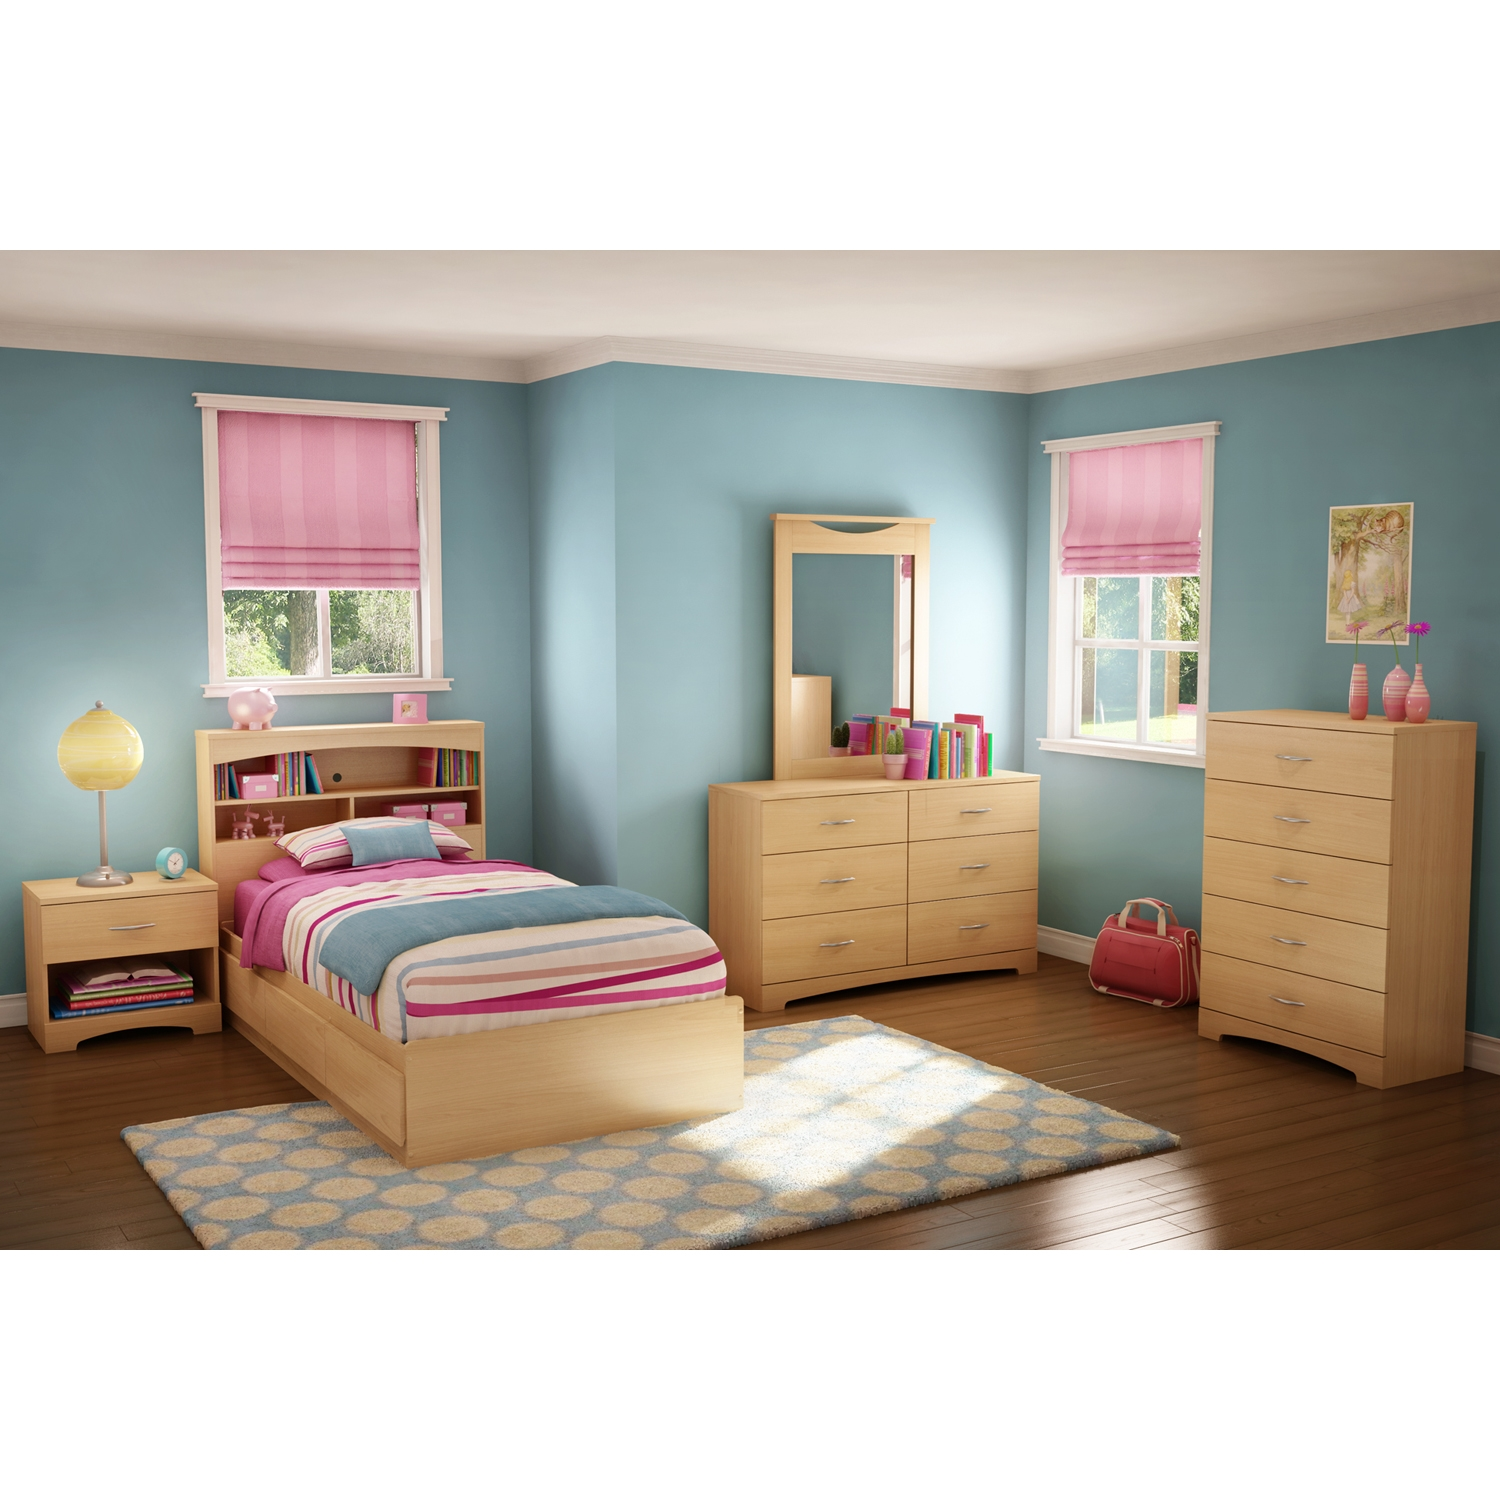 Popular Twin Mates Bed - 3 Drawers, Natural Maple - SS-2713A1